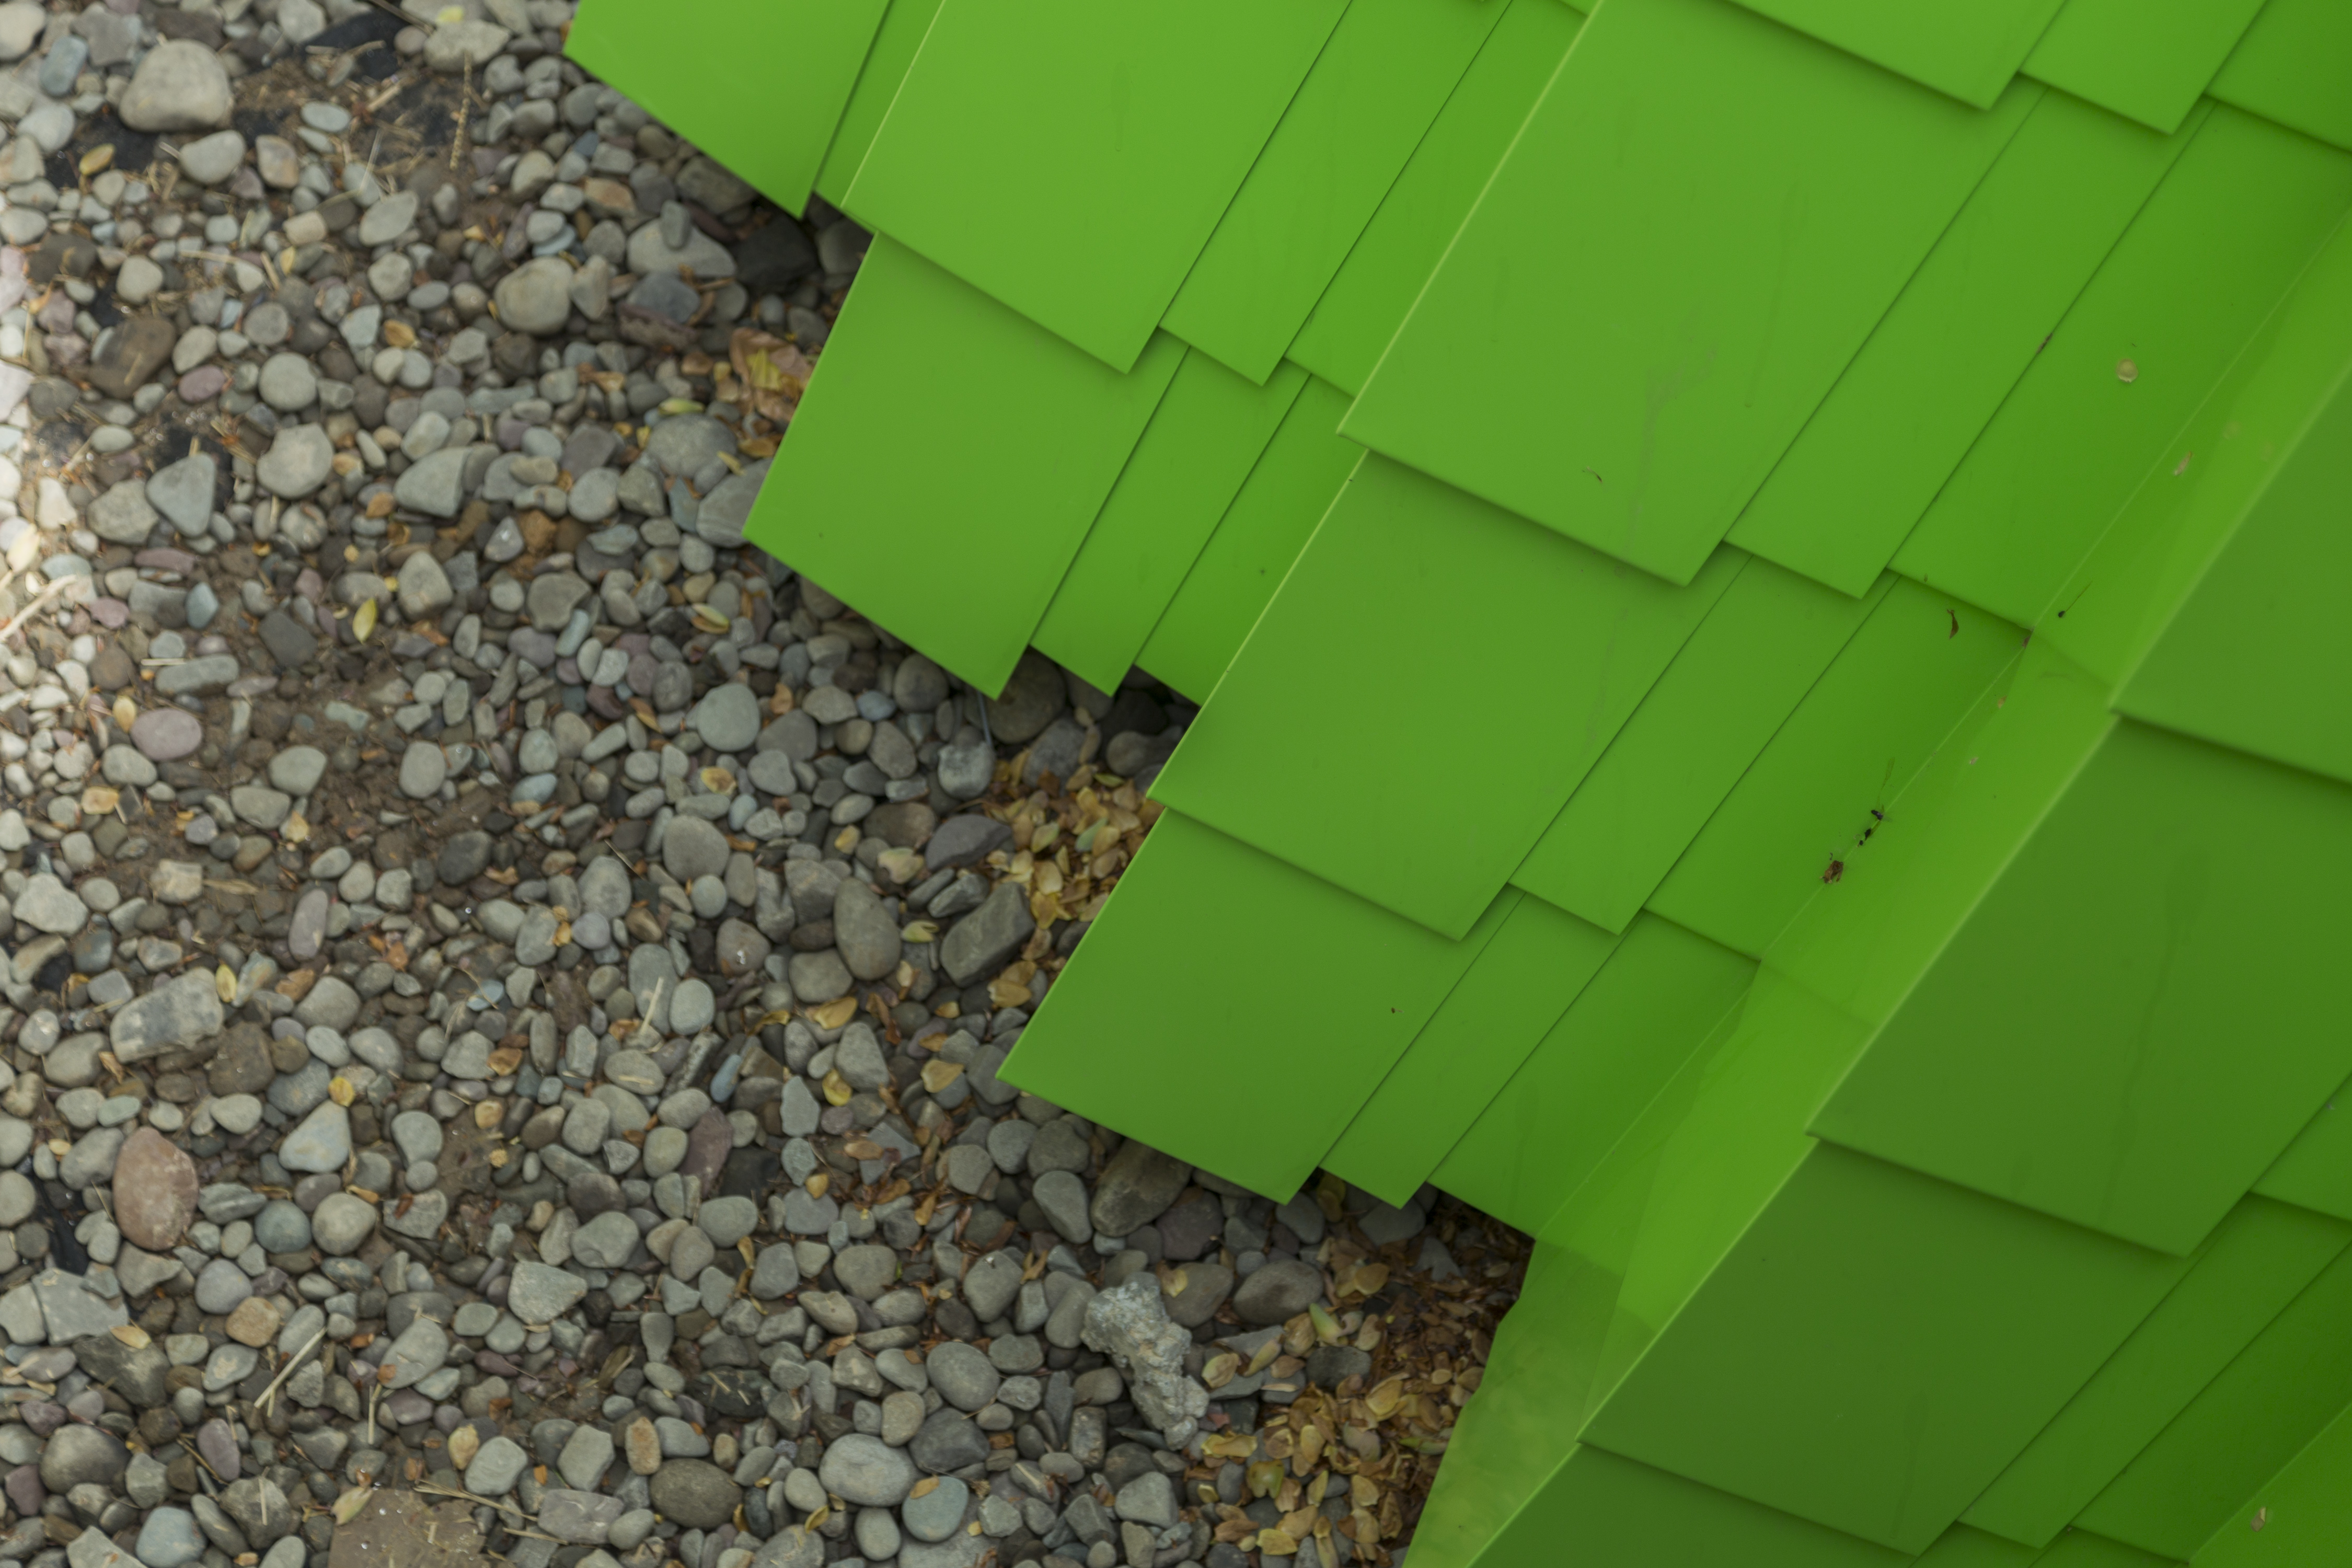 Detail of the painted aluminum shingles at grade.